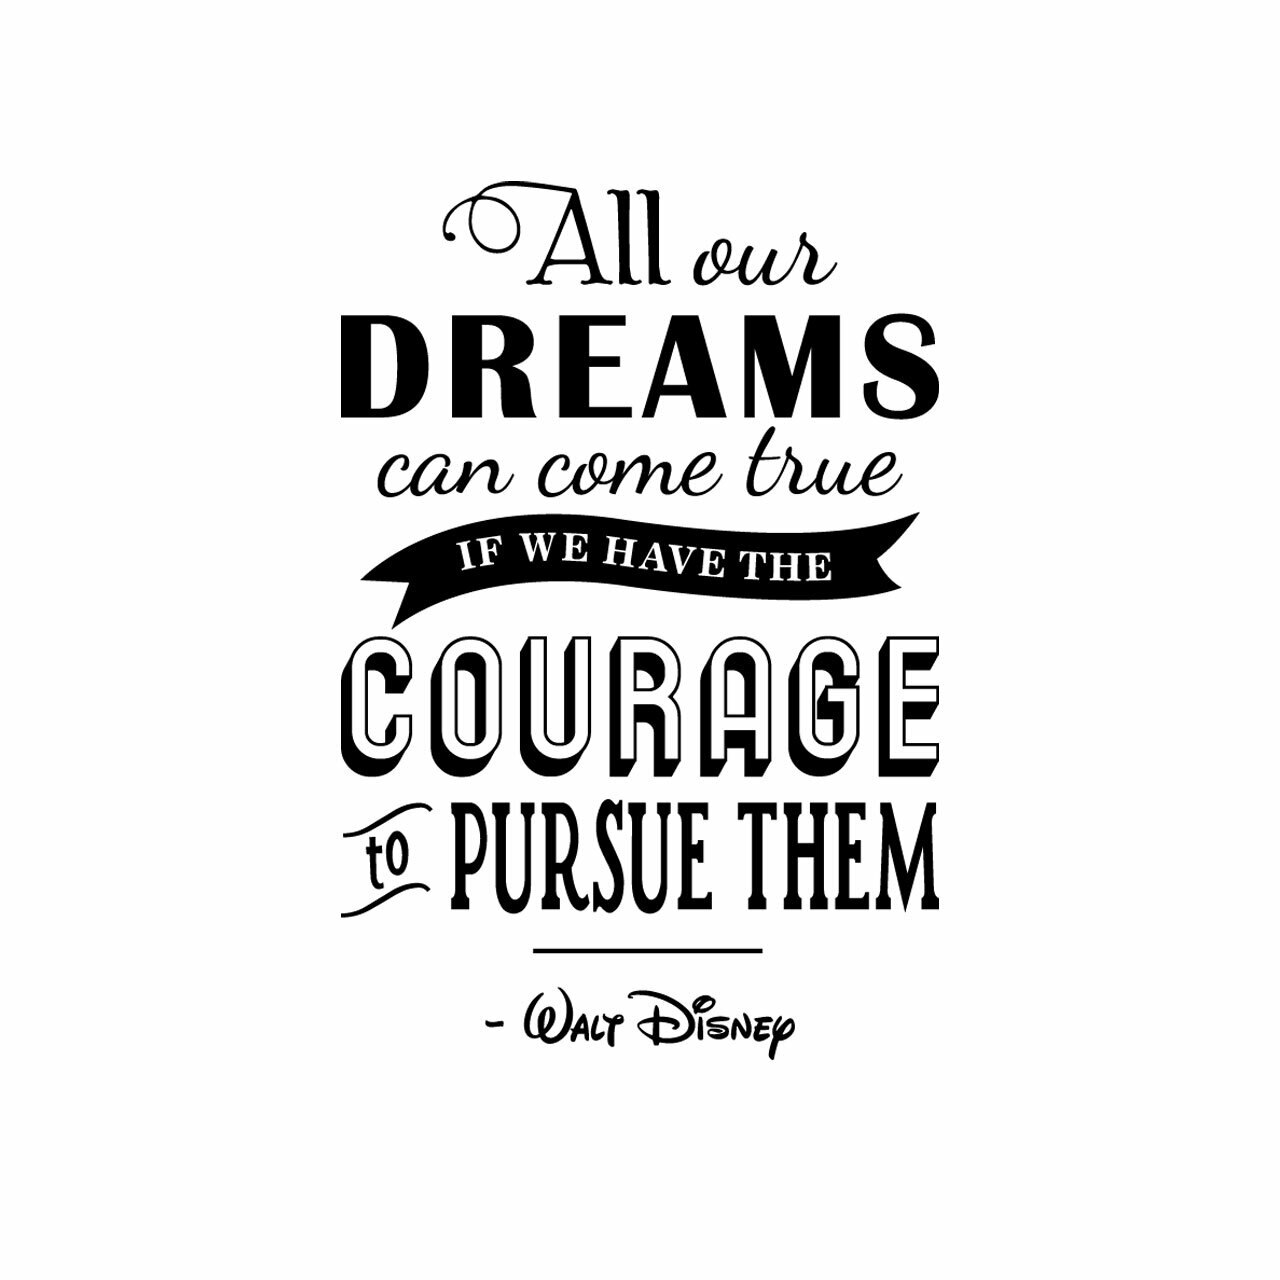 """""""All our dreams can come true if we have the courage to pursue them."""" - Walt Disney in mixed fonts, vertically arranged in black writing on a white background"""